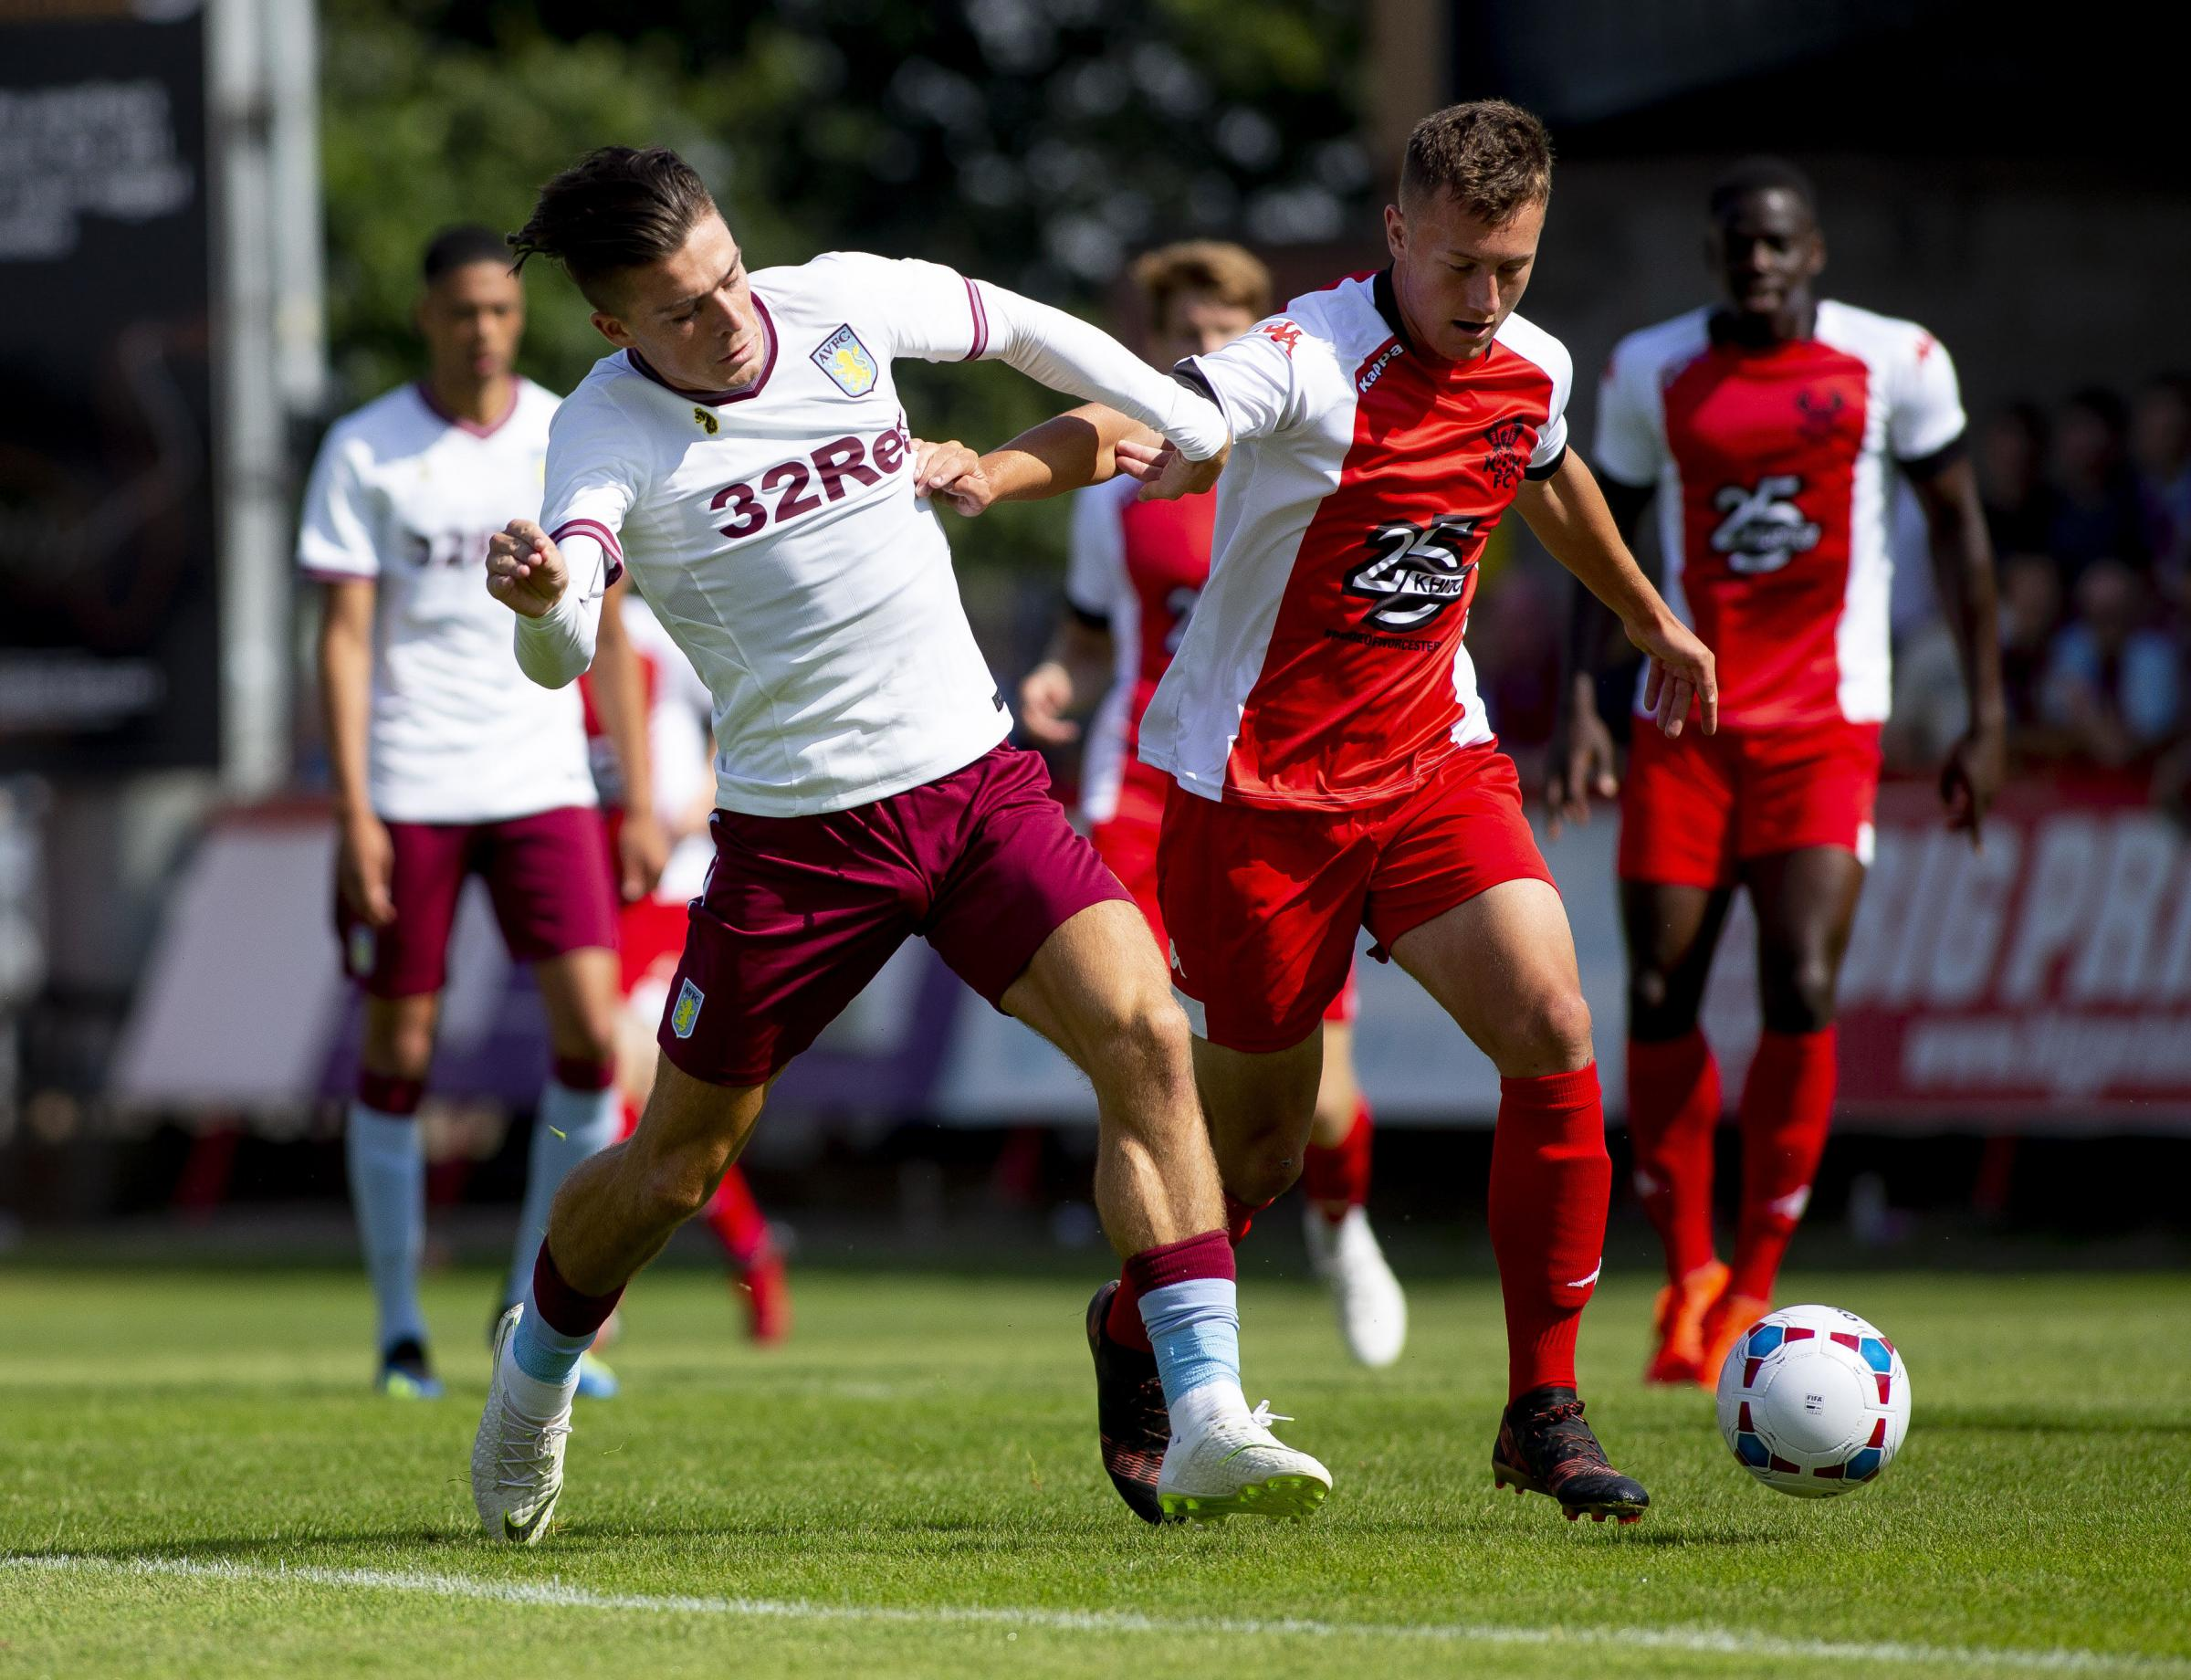 Harry Higginson, in action against Villa's Jack Grealish during pre-season. Pic: AVFC.